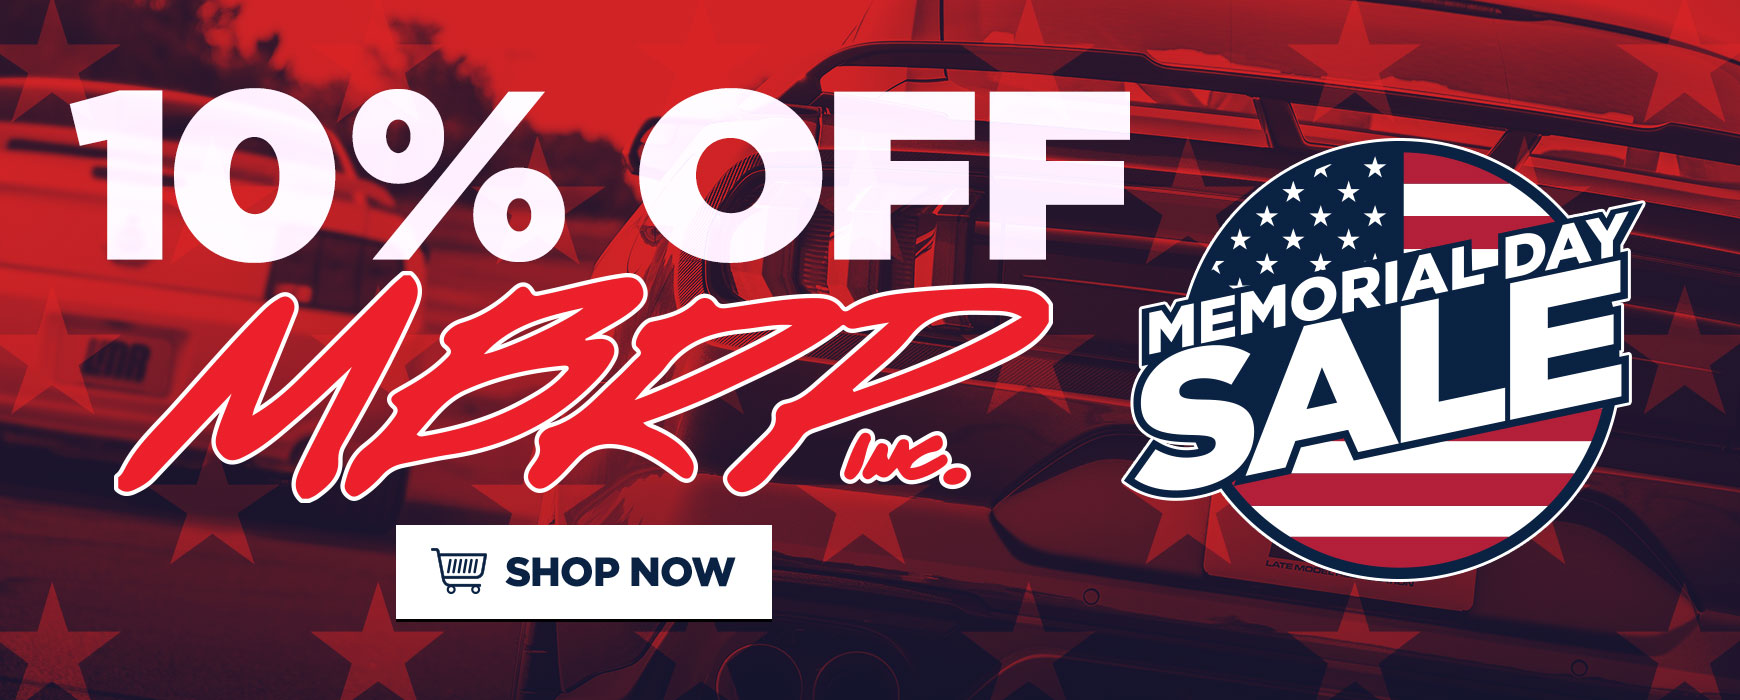 MBRP Mustang Parts On Sale